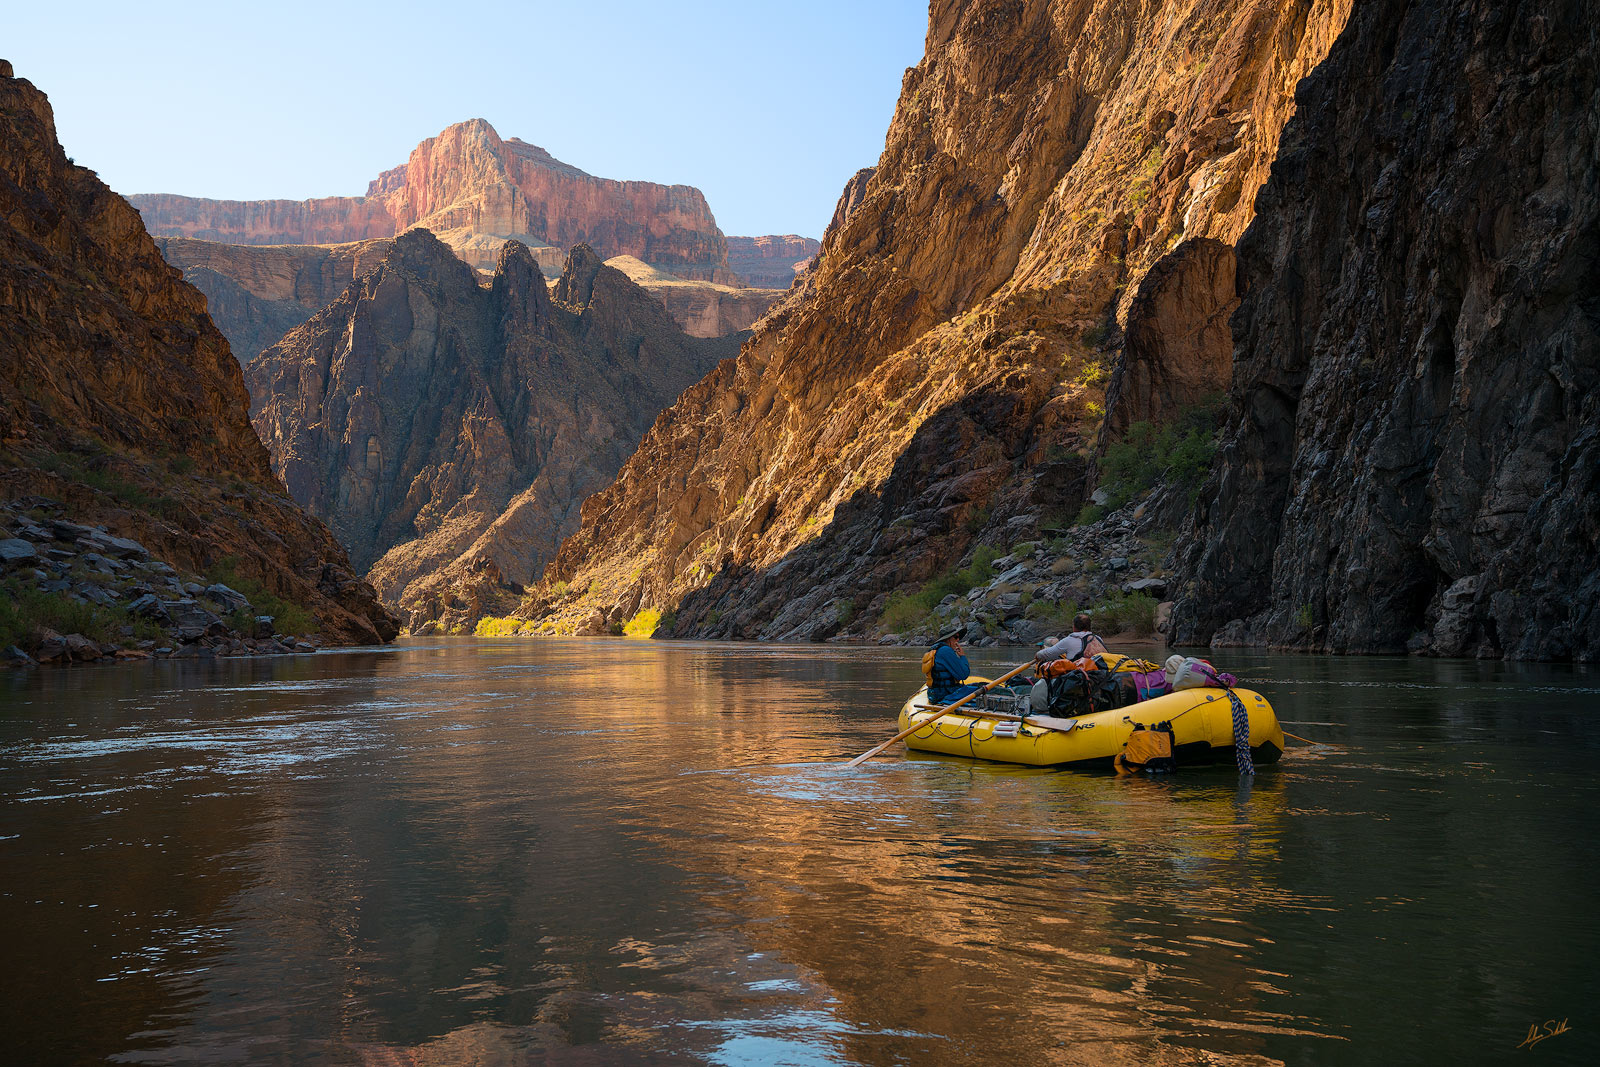 Approaching Trinity Creek in the Inner Gorge of Grand Canyon National Park. Photo © Adam Schallau, All Rights Reserved.